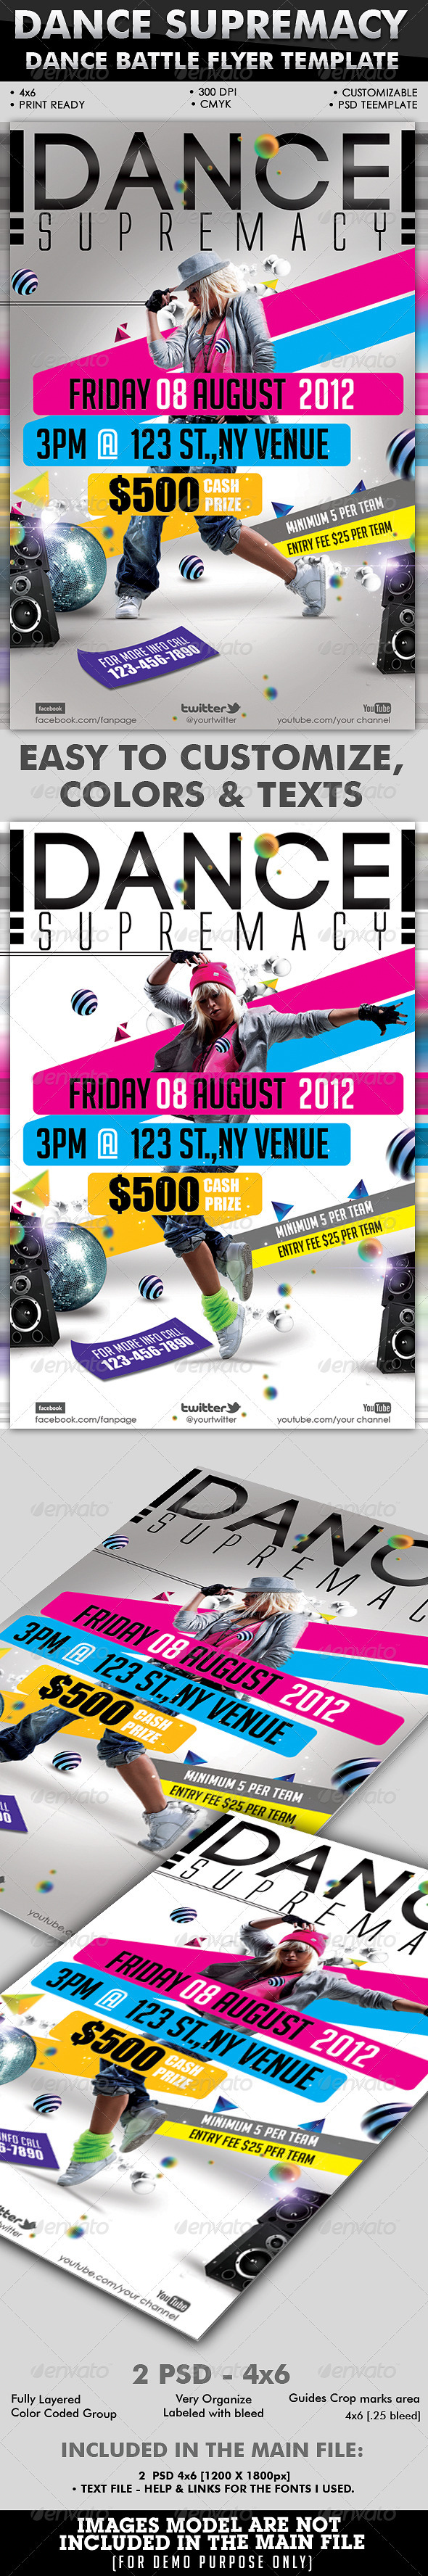 Dance Supremacy/Dance Battle Flyer Template - Clubs & Parties Events